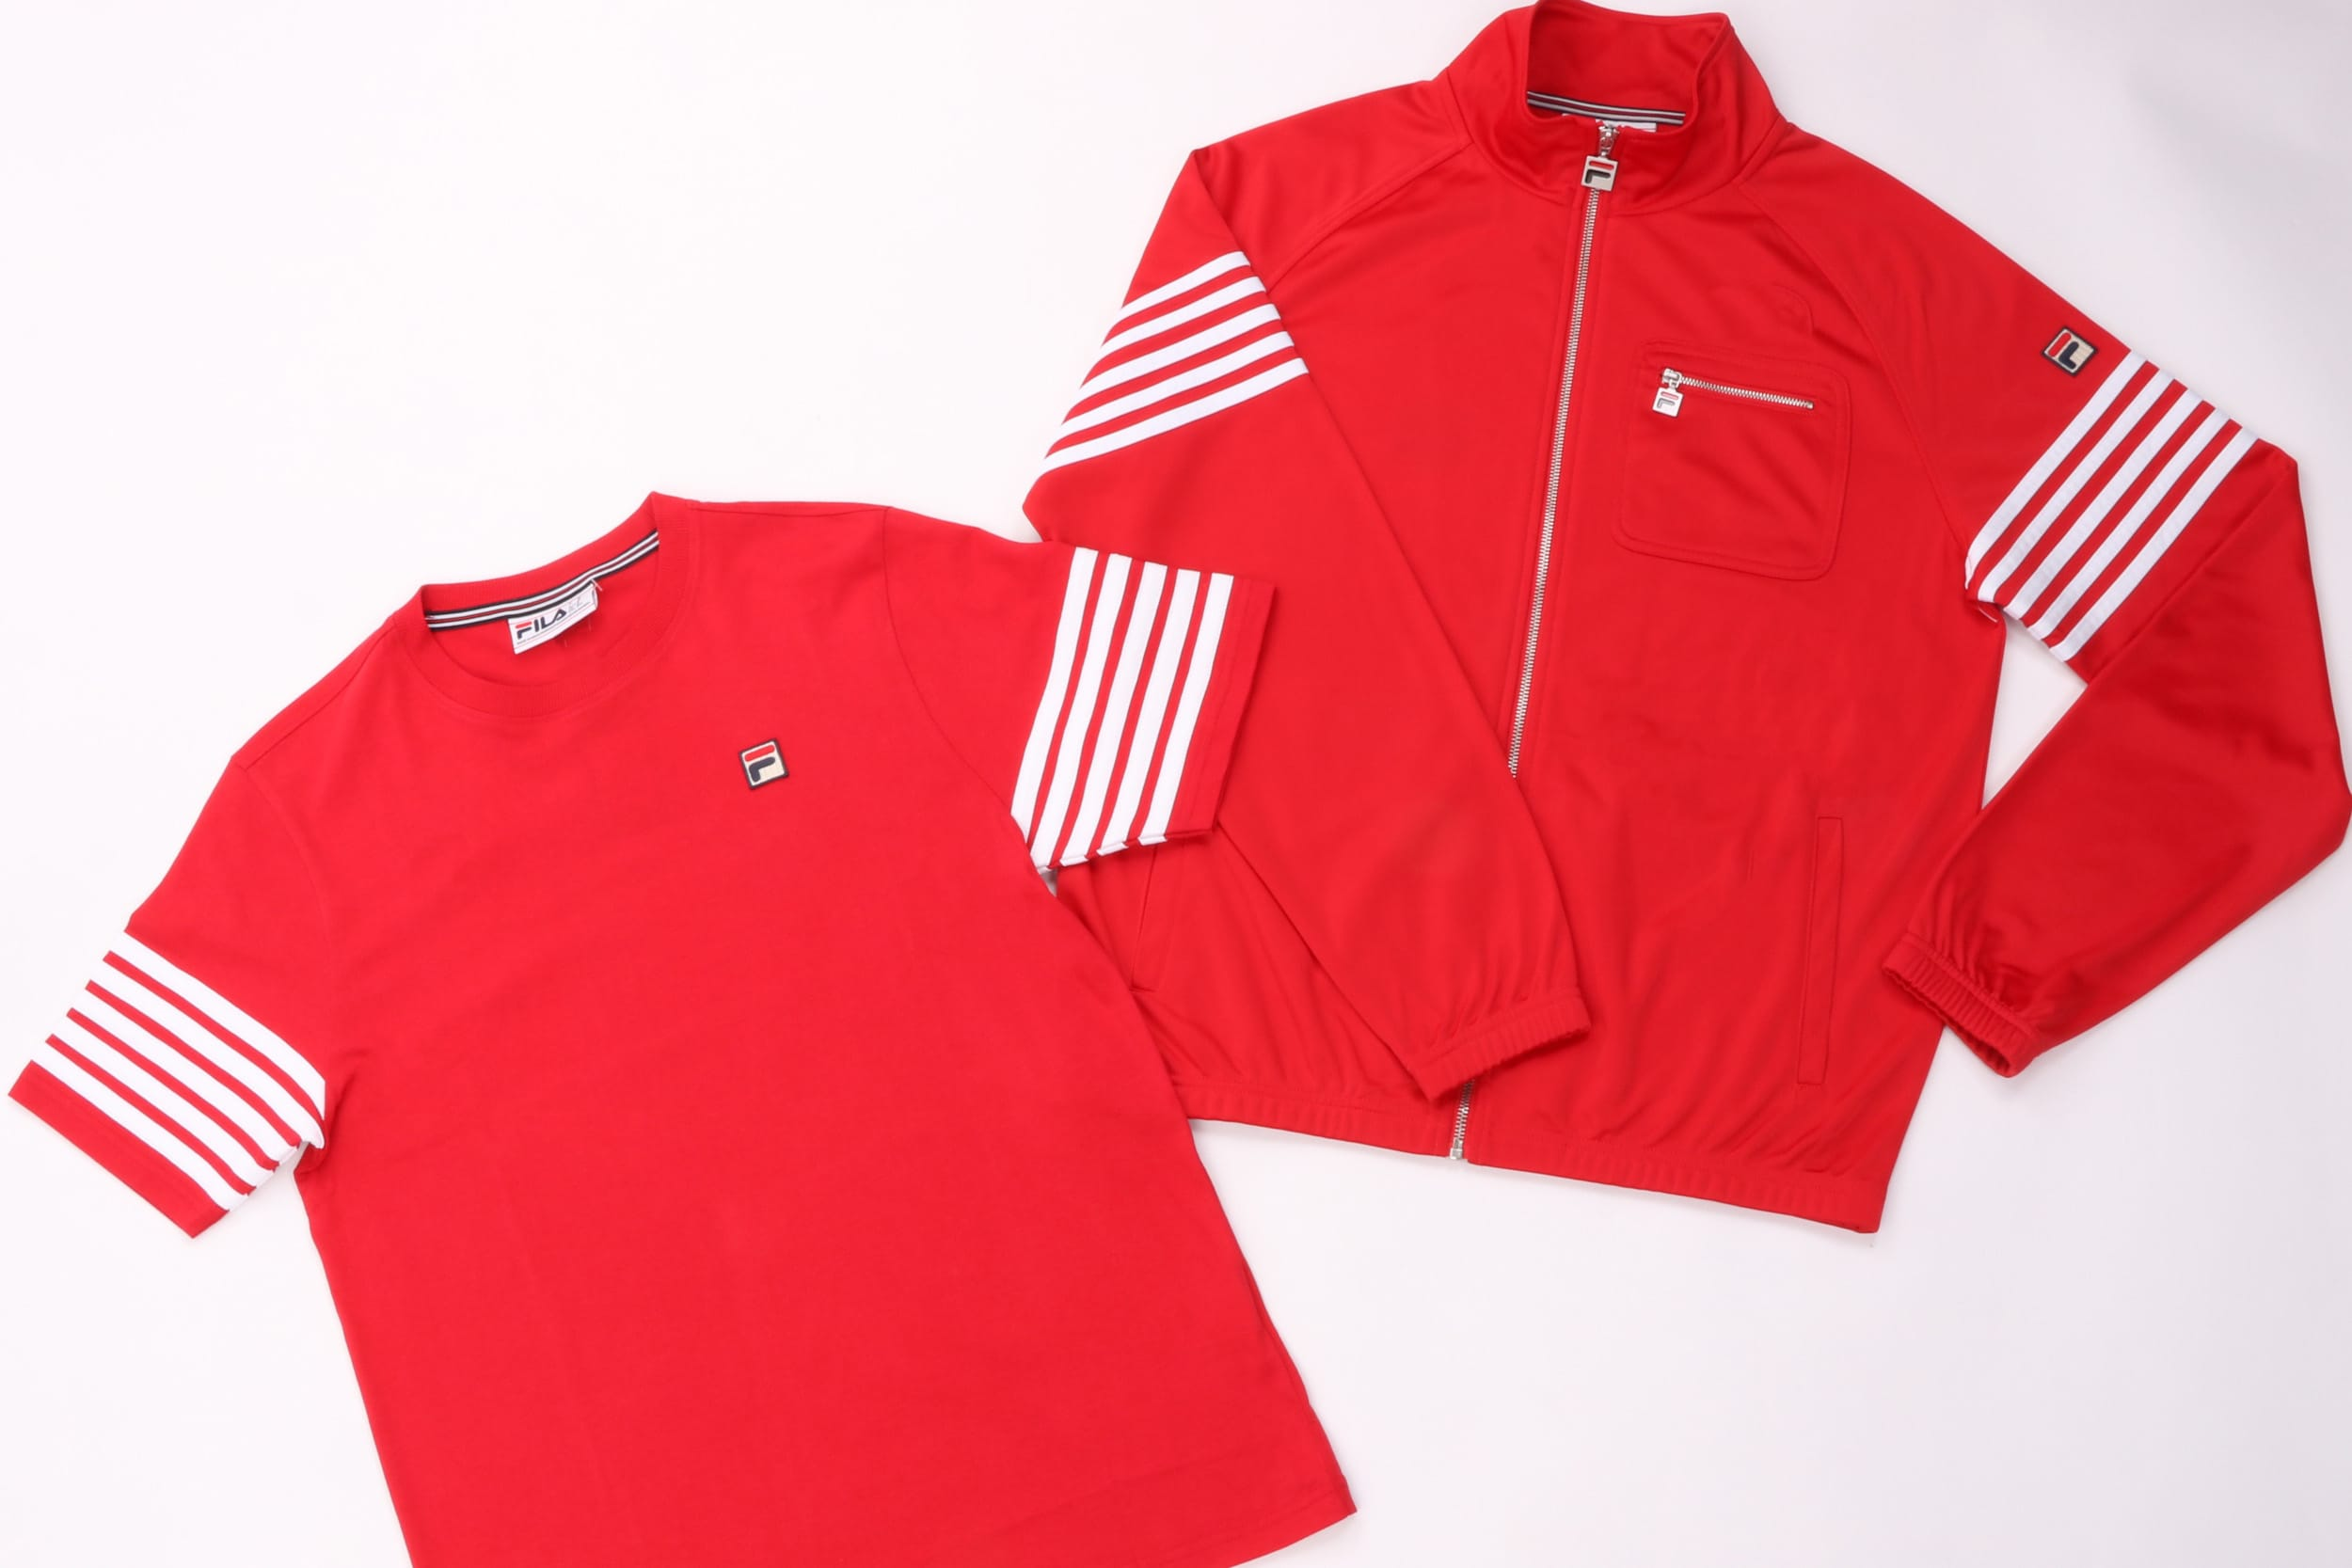 Fila Vintage 5 Stripe Track Top & Tee Red